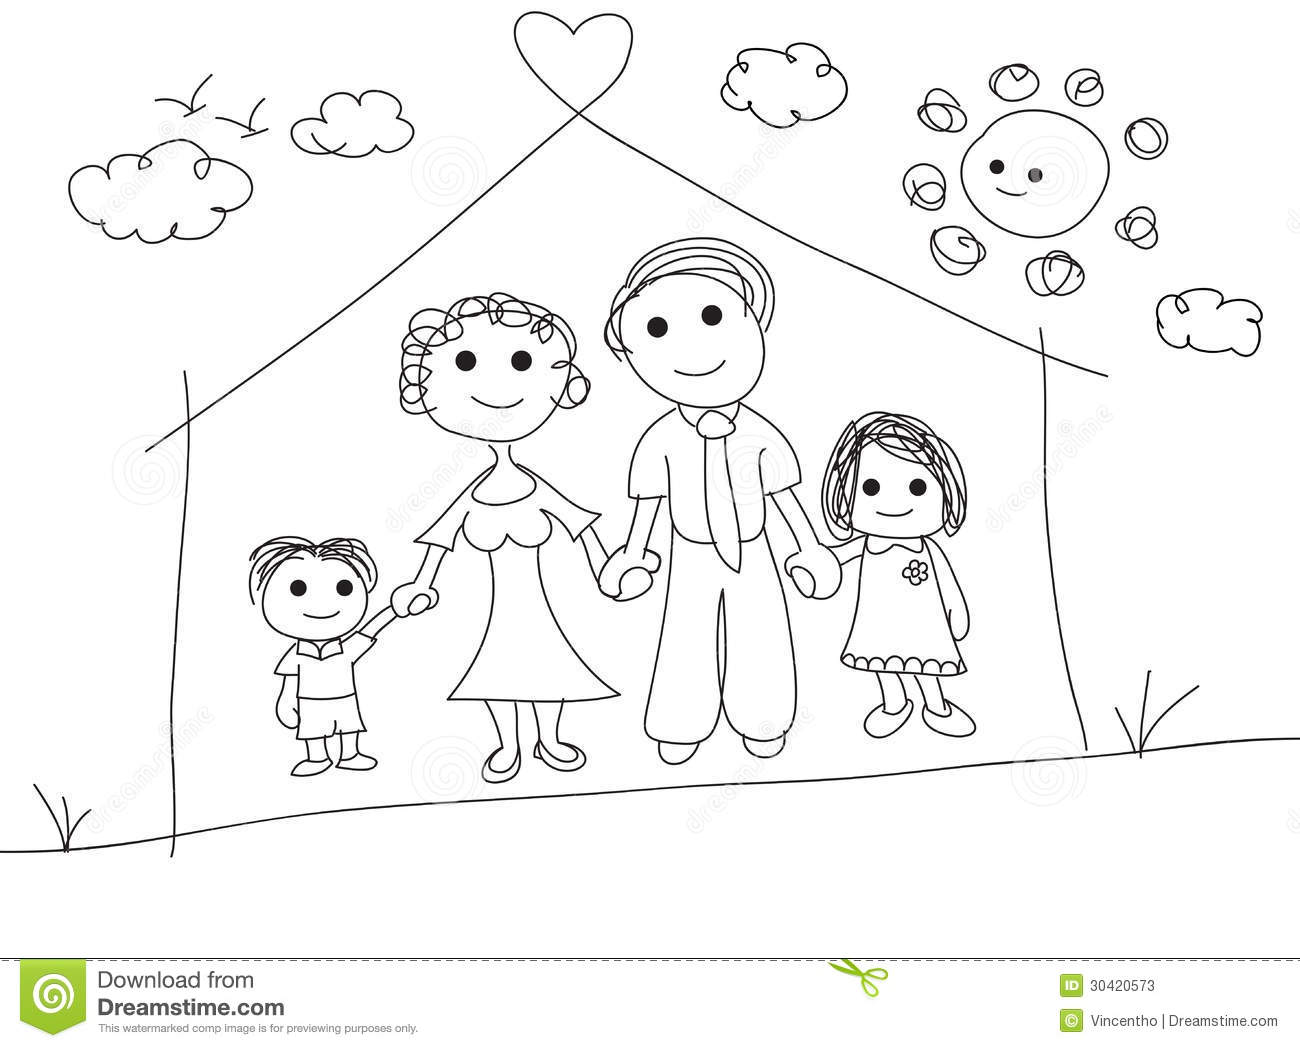 Family Portrait Scribble Doodle Sketch Drawing Illustration Stock Vector